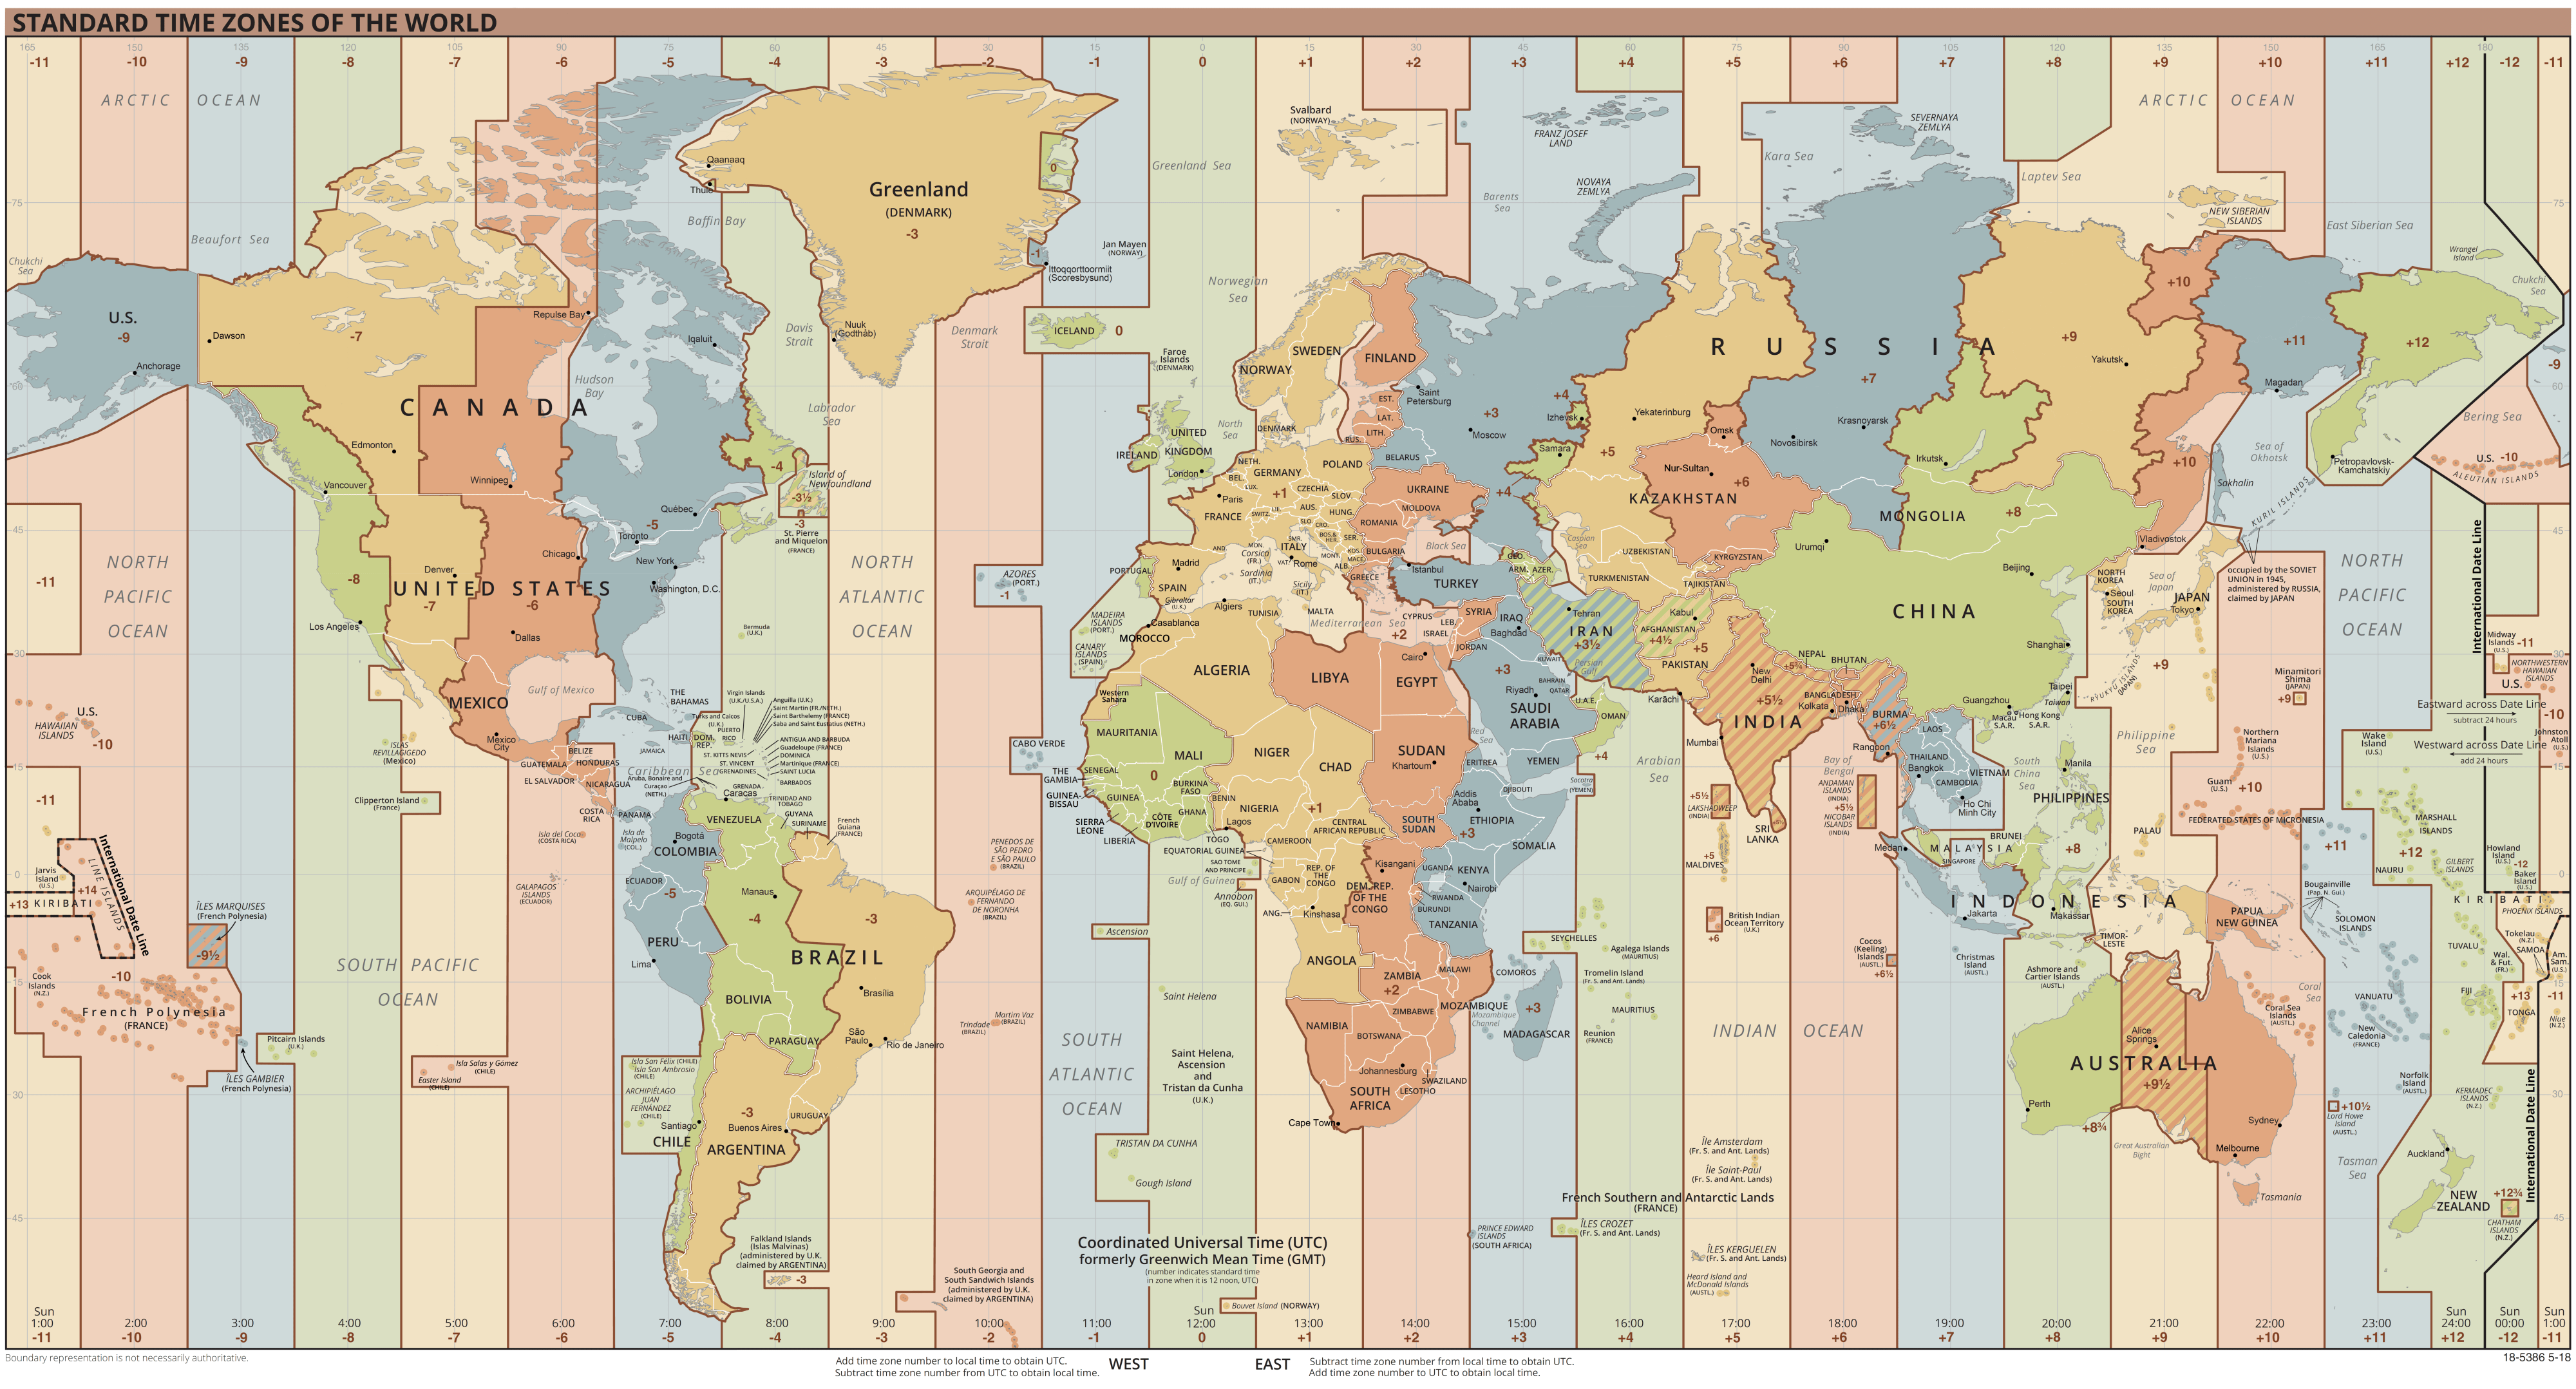 Latest Time Zone Map Now That Russia Has Added Their